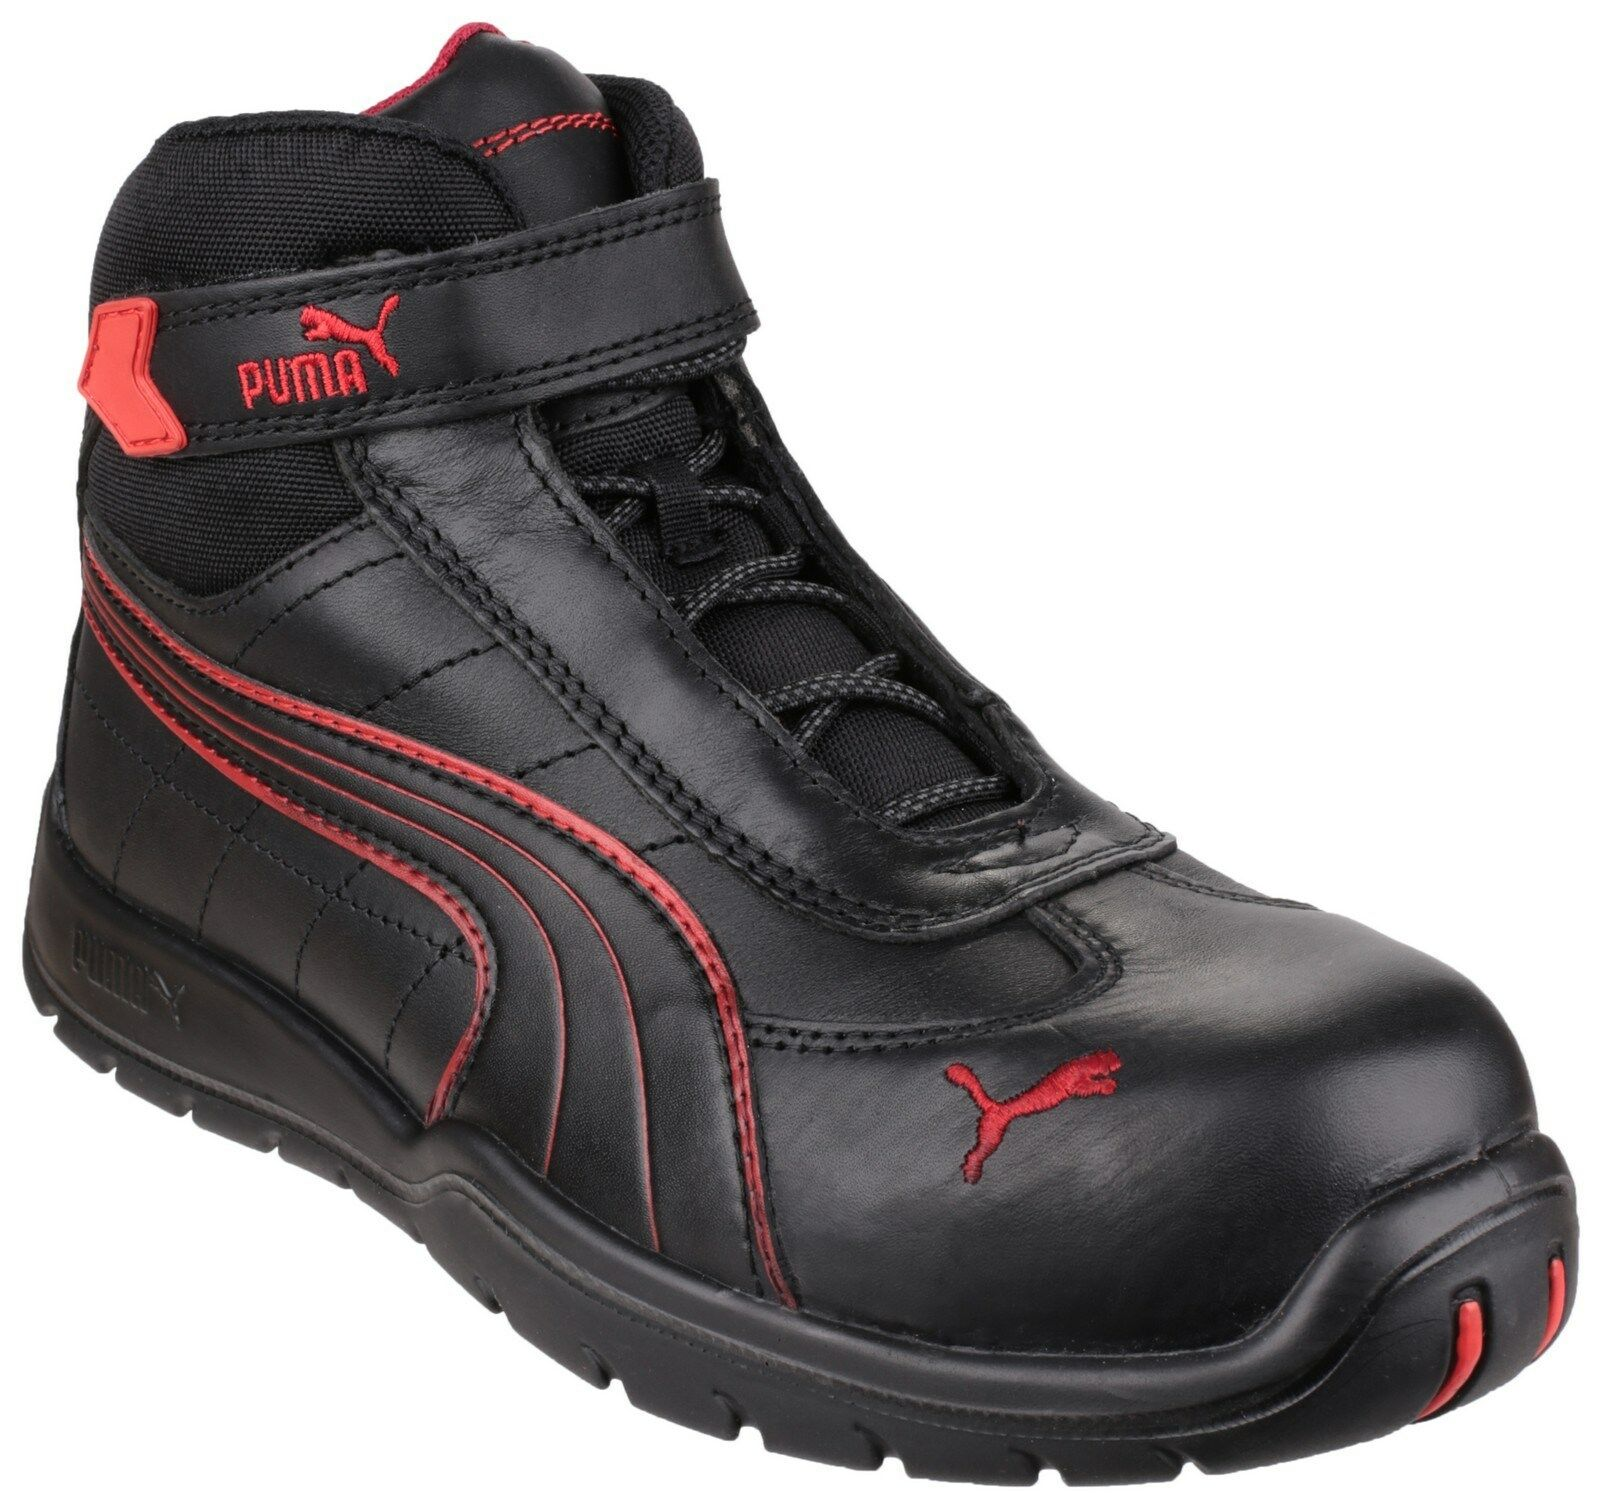 Puma Daytona Mid Cap Safety Uomo Composite Toe Cap Mid Industrial Work Boots UK6-12 a554c9